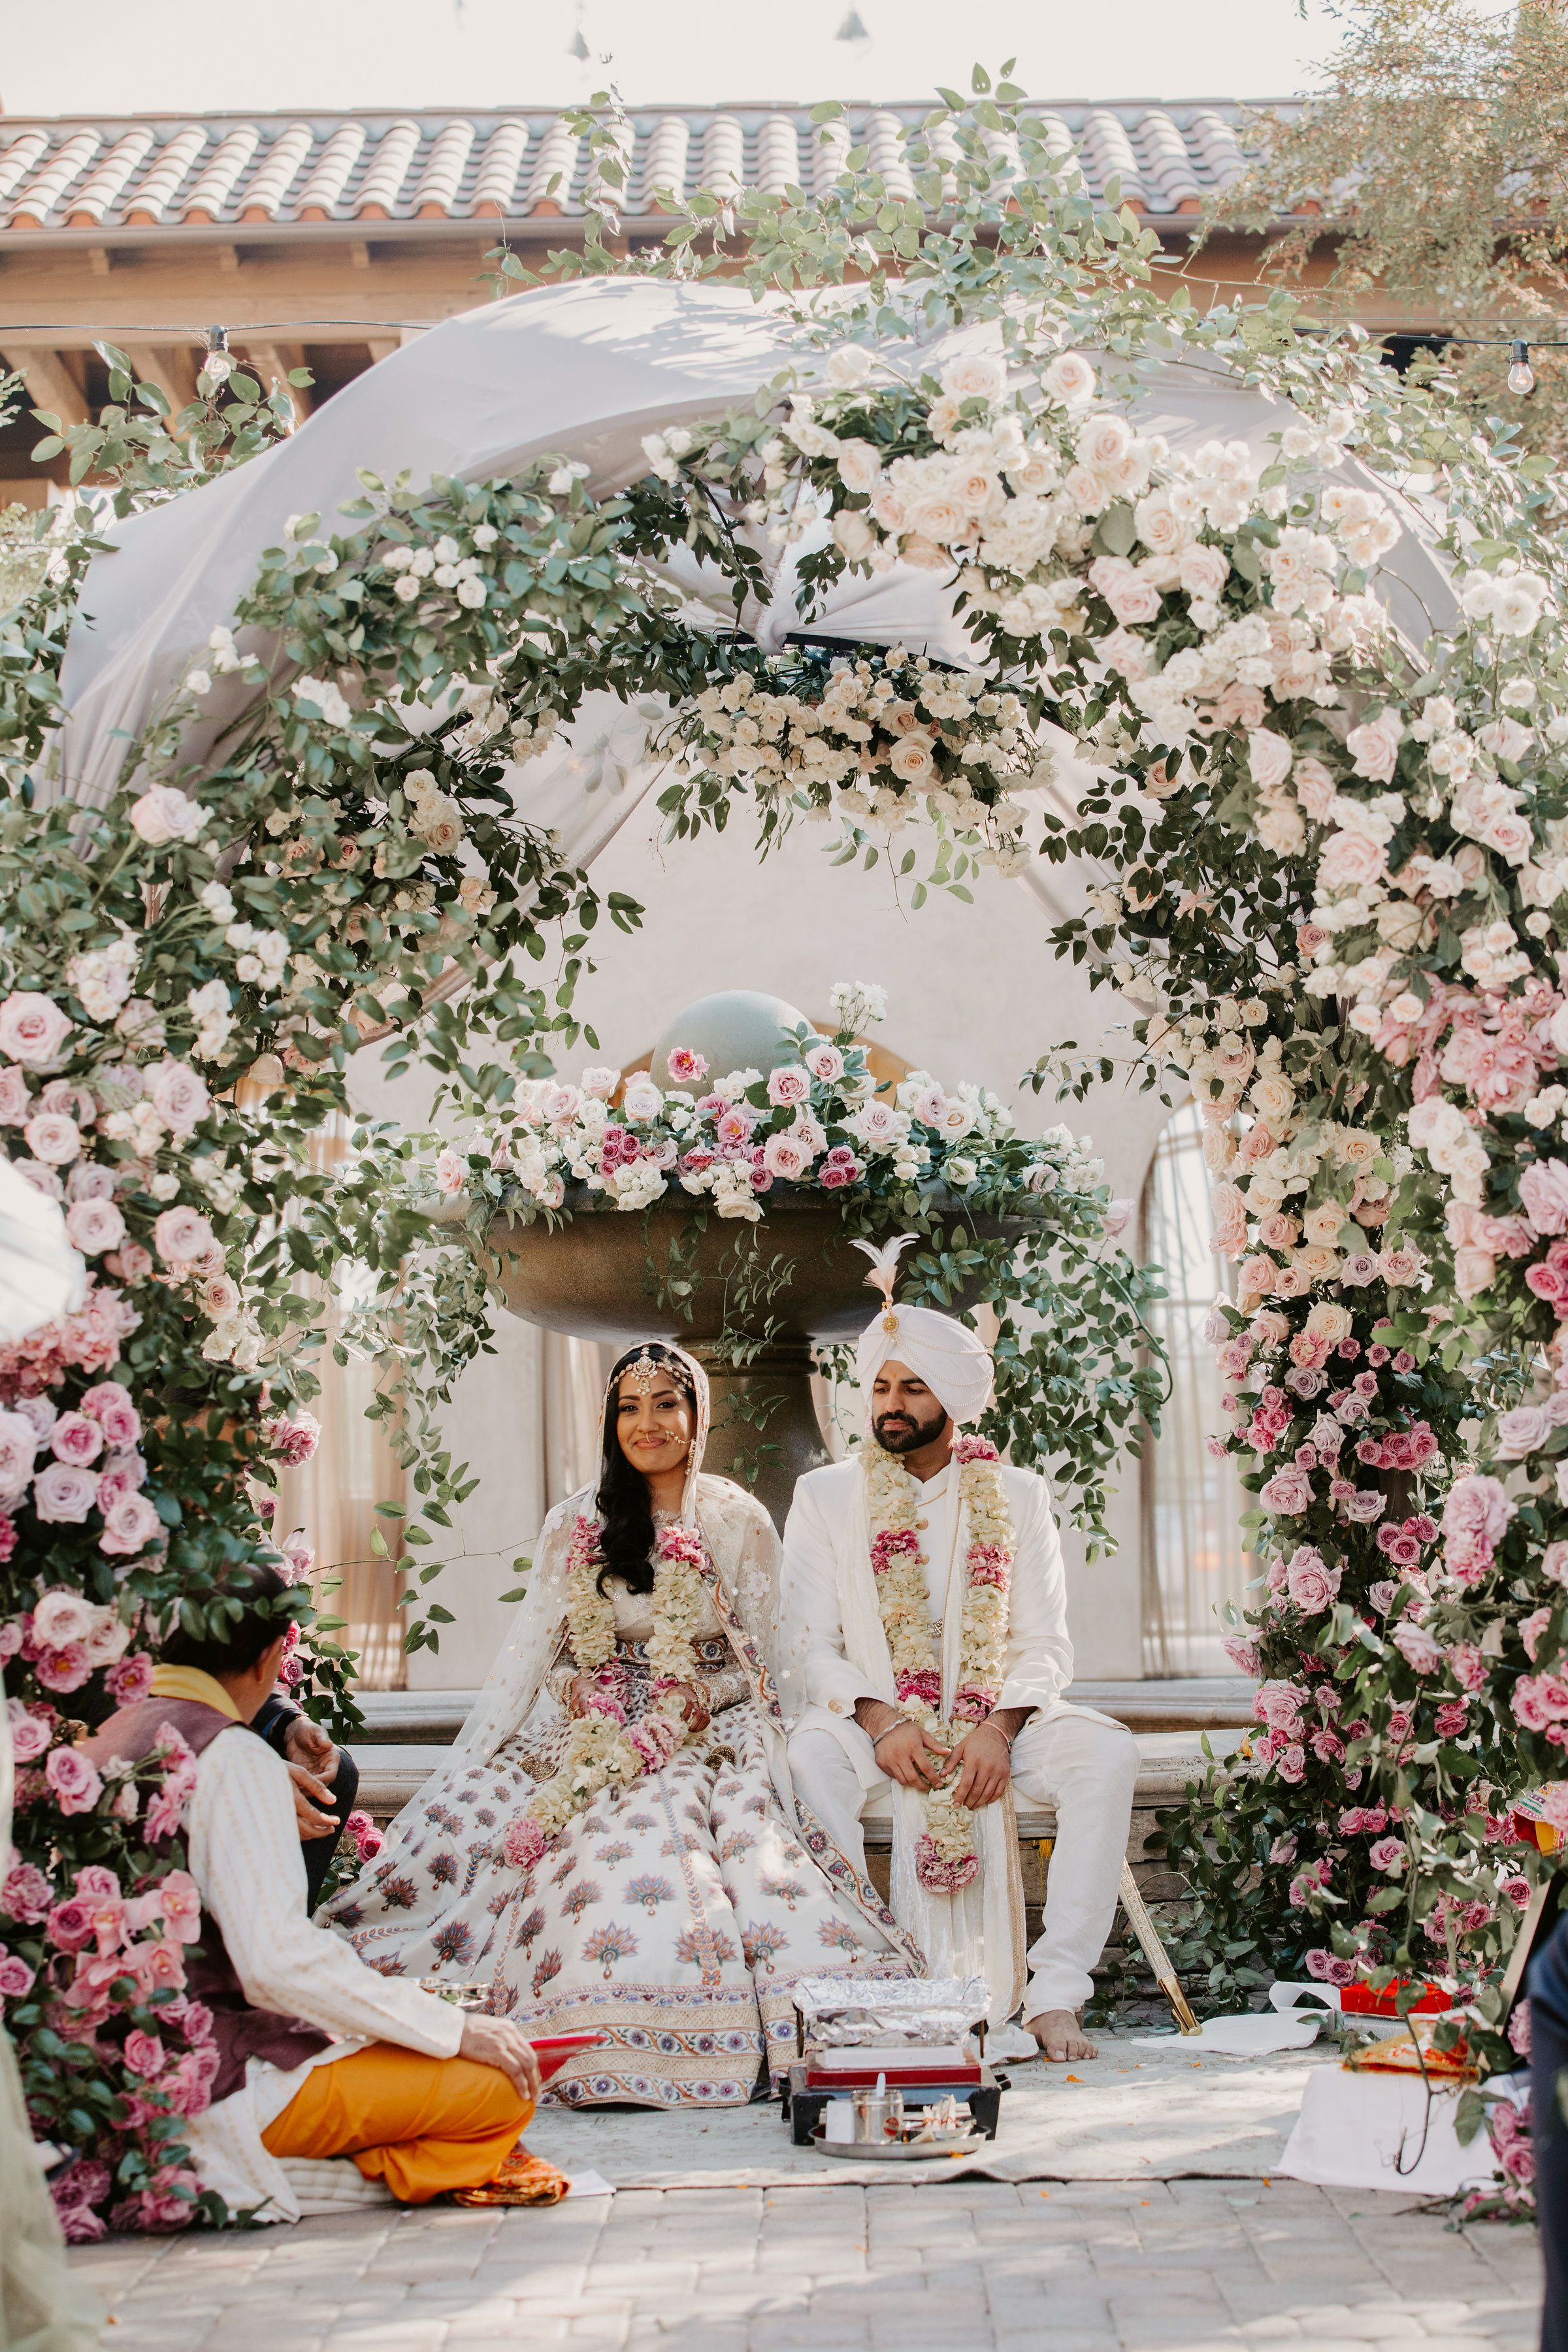 A Dramatic California Wedding with Hindu and Sikh Elements